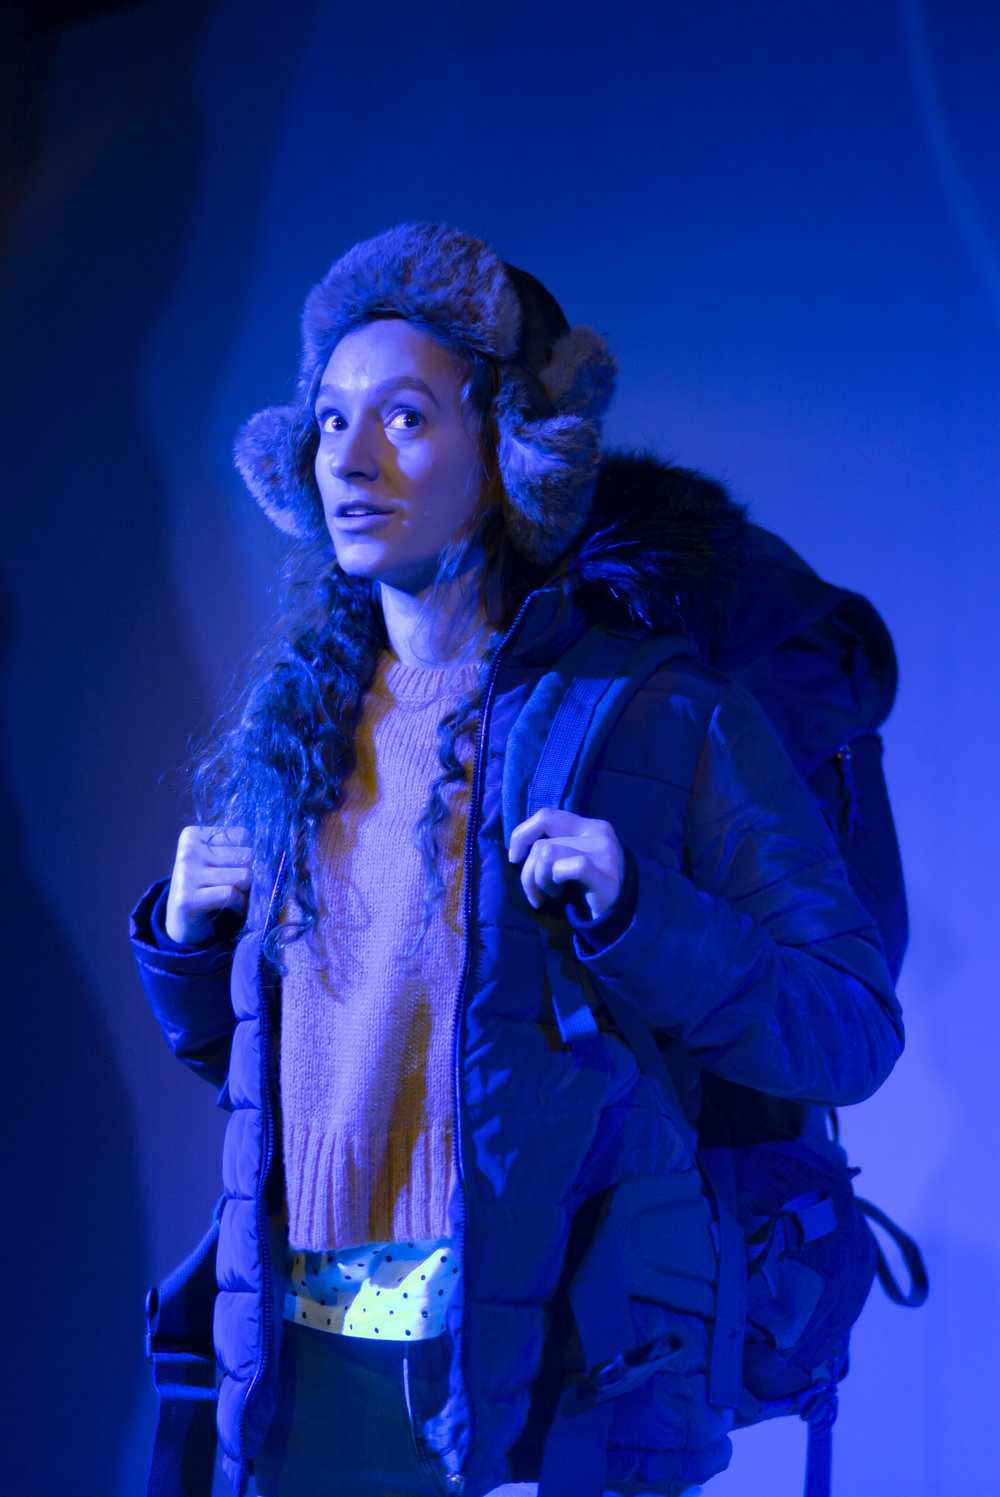 Gemma Barnett as Rory in A Hundred Words for Snow. Photo courtesy of Nick Rutter (2019).